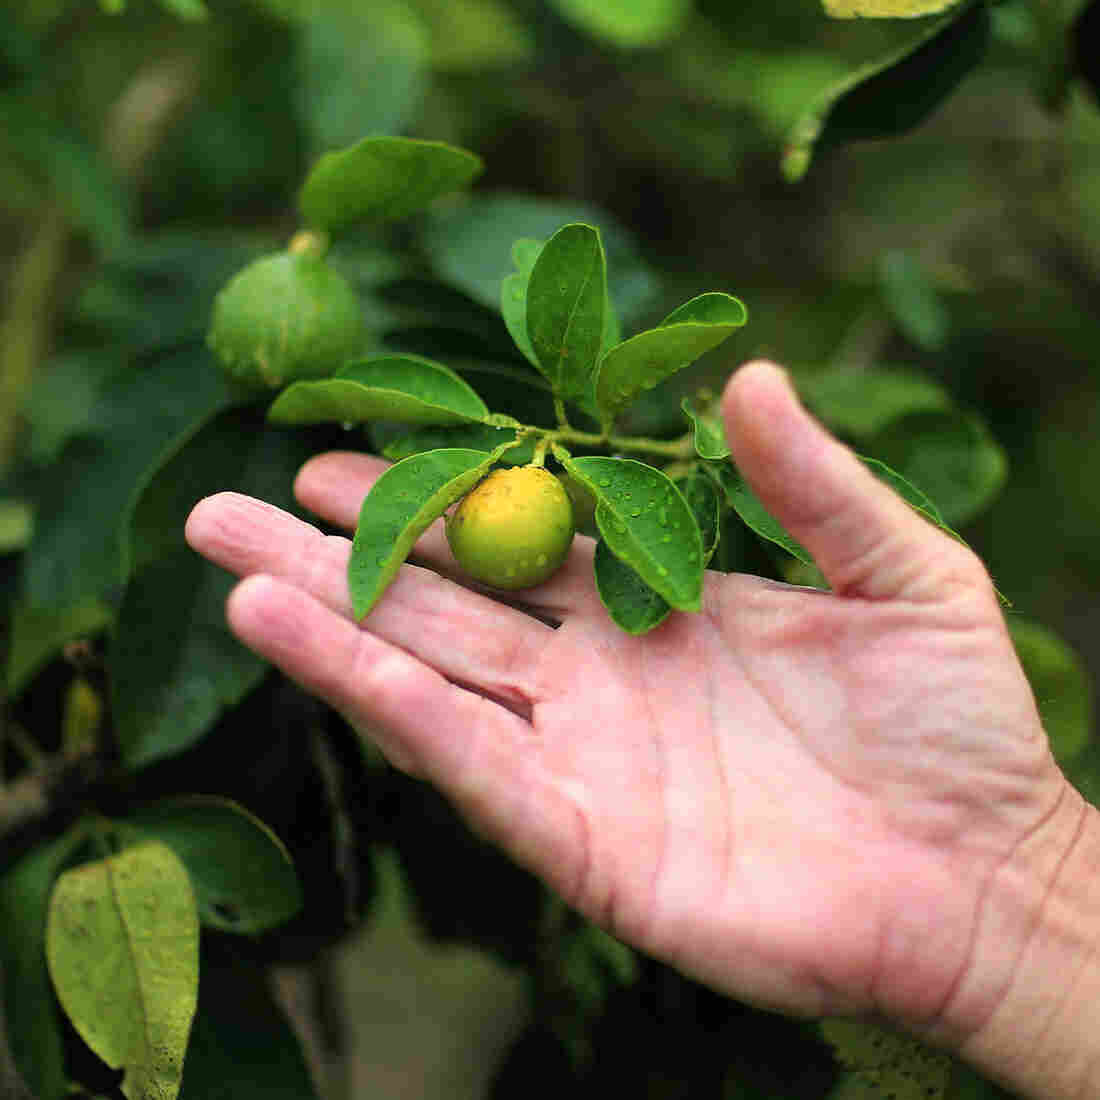 The 'Greening' Of Florida Citrus Means Less Green In Growers' Pockets